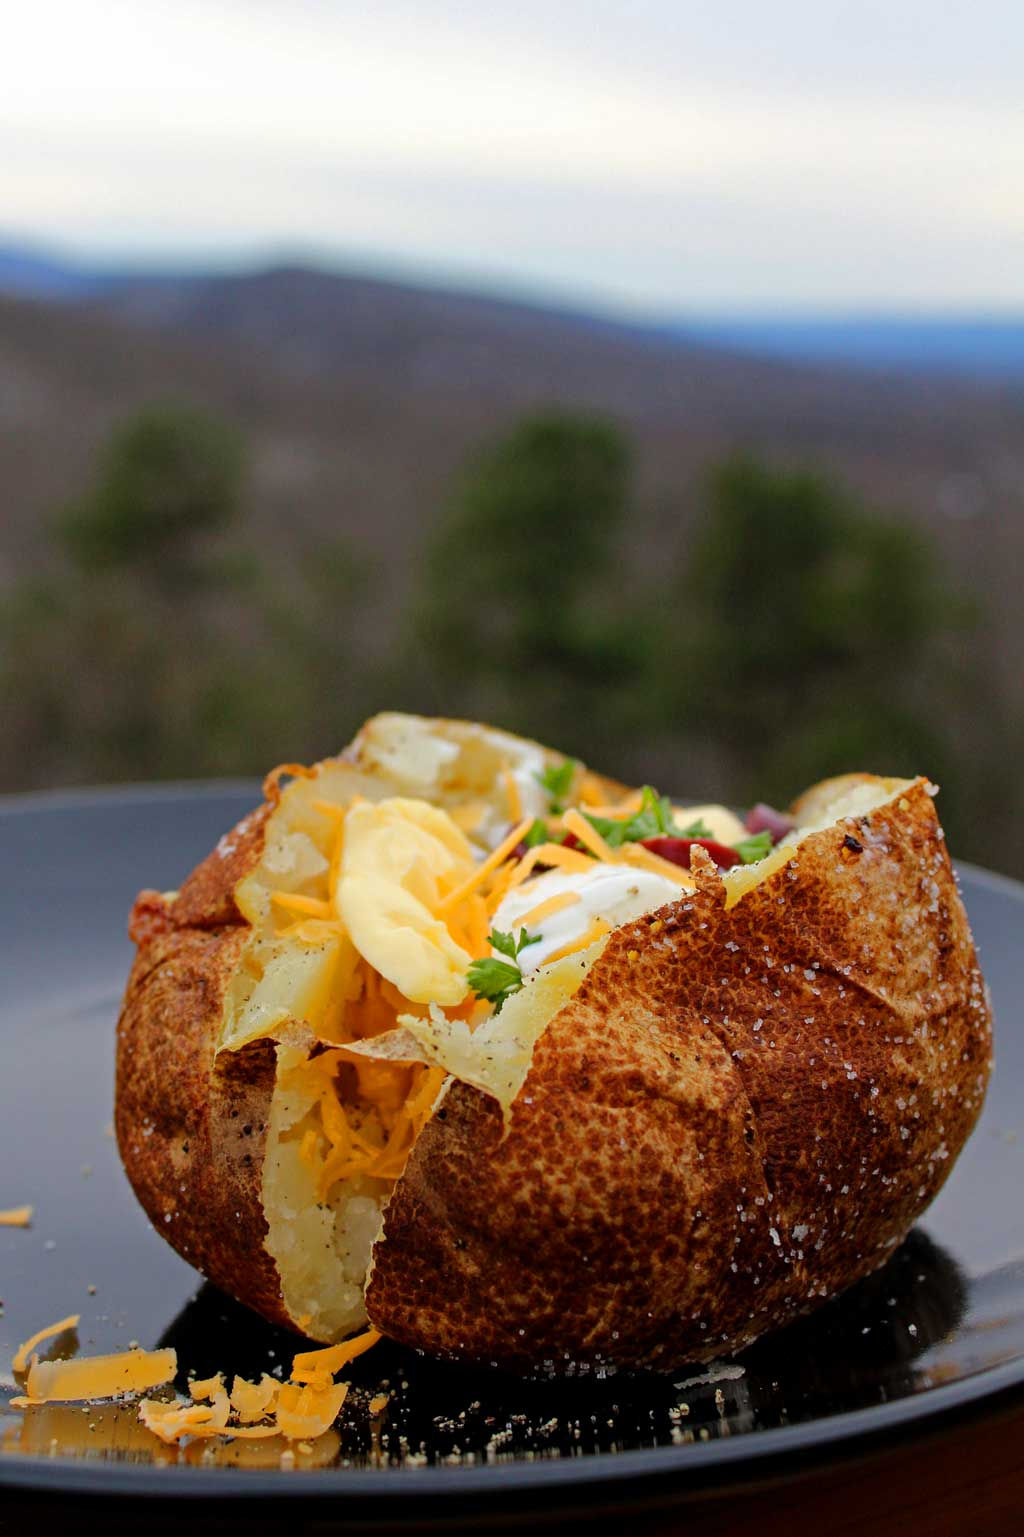 Steakhouse baked potatoes have a salted crispy, golden skin with a light with a warm fluffy center. Learn how to make these perfect baked potatoes at home!